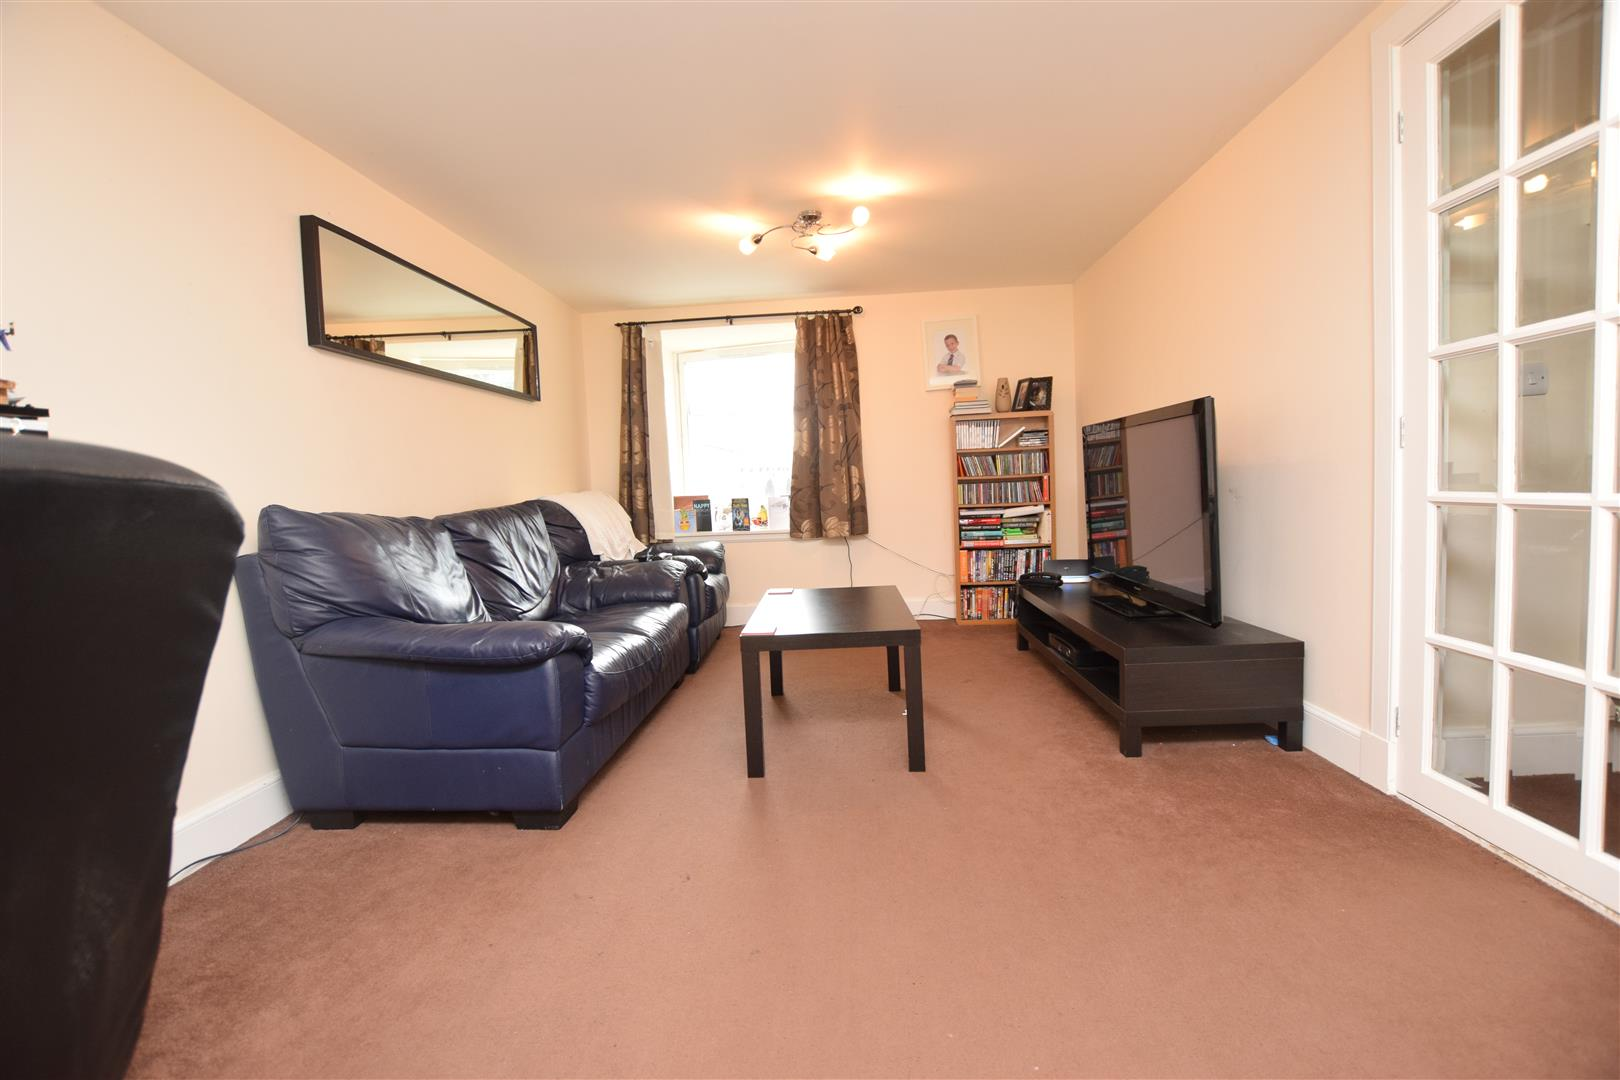 Flat A, Rhys Court, 8 Main Street, Perth, Perthshire, PH2 7GD, UK